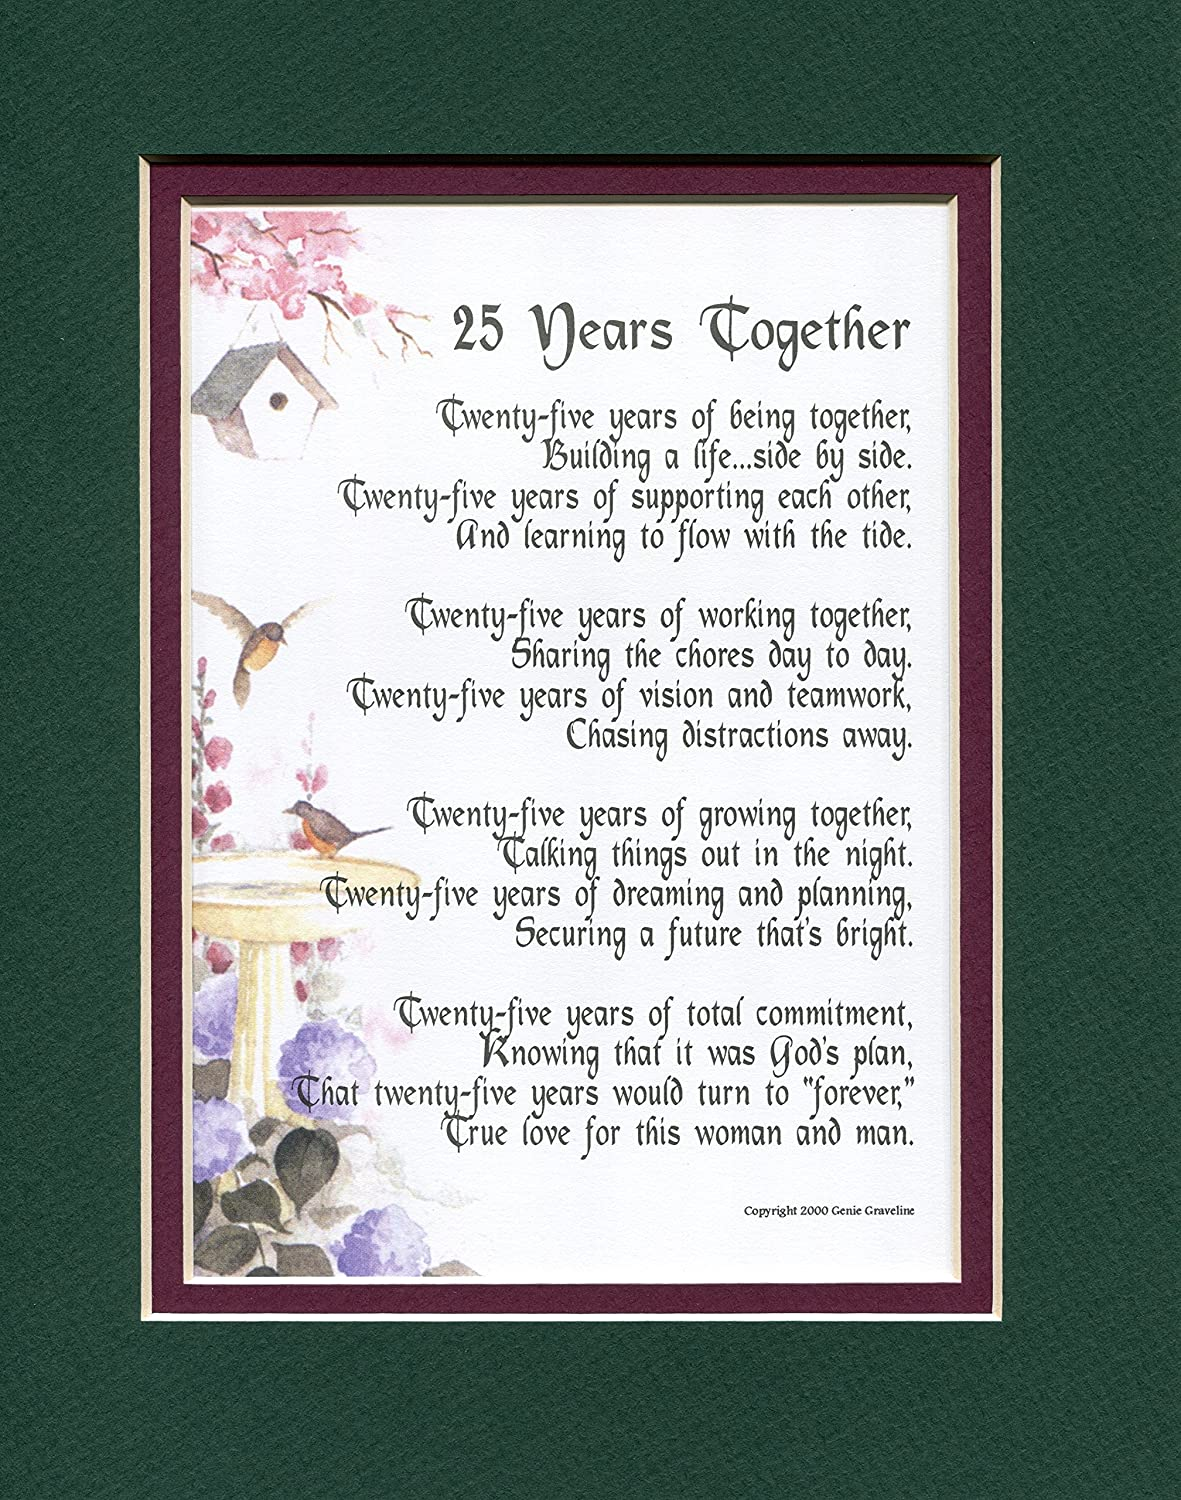 A Gift For A 25th Wedding Anniversary, #117, Touching 8×10 Poem, Double-matted in Dark Green Over Burgundy and Enhanced with Watercolor Graphics.